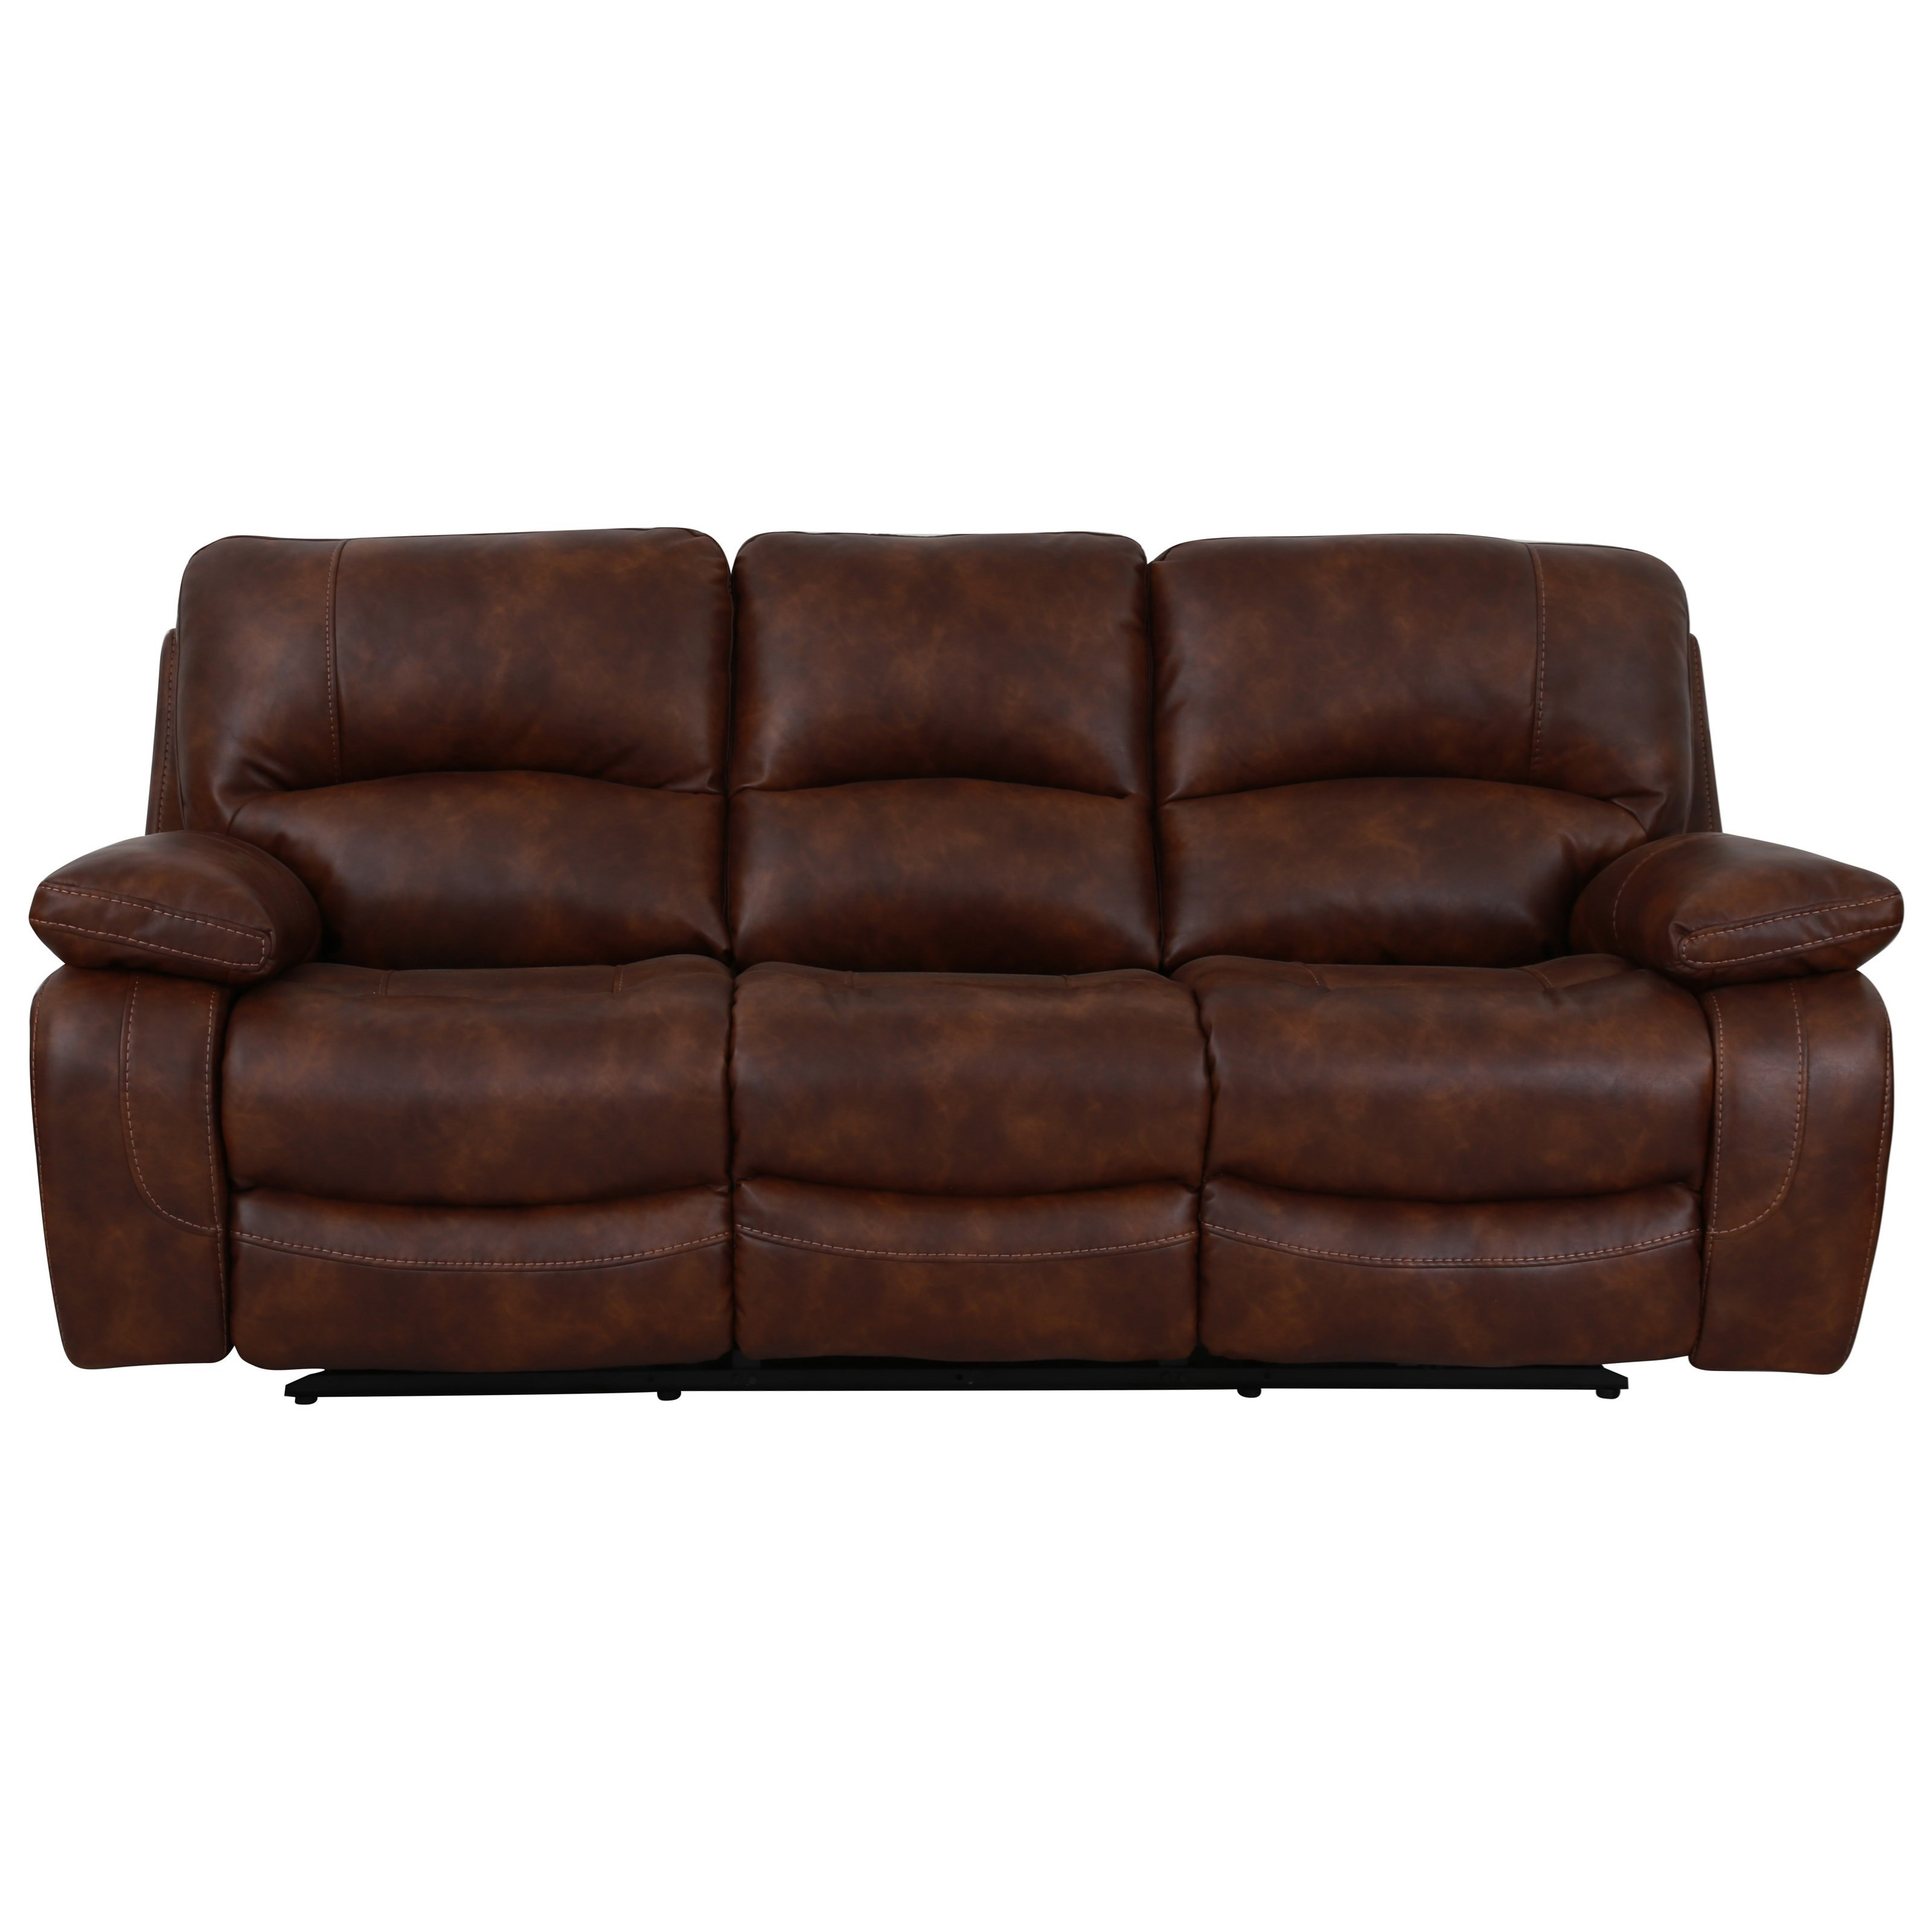 1010 Power Reclining Sofa by Cheers Sofa at Lagniappe Home Store